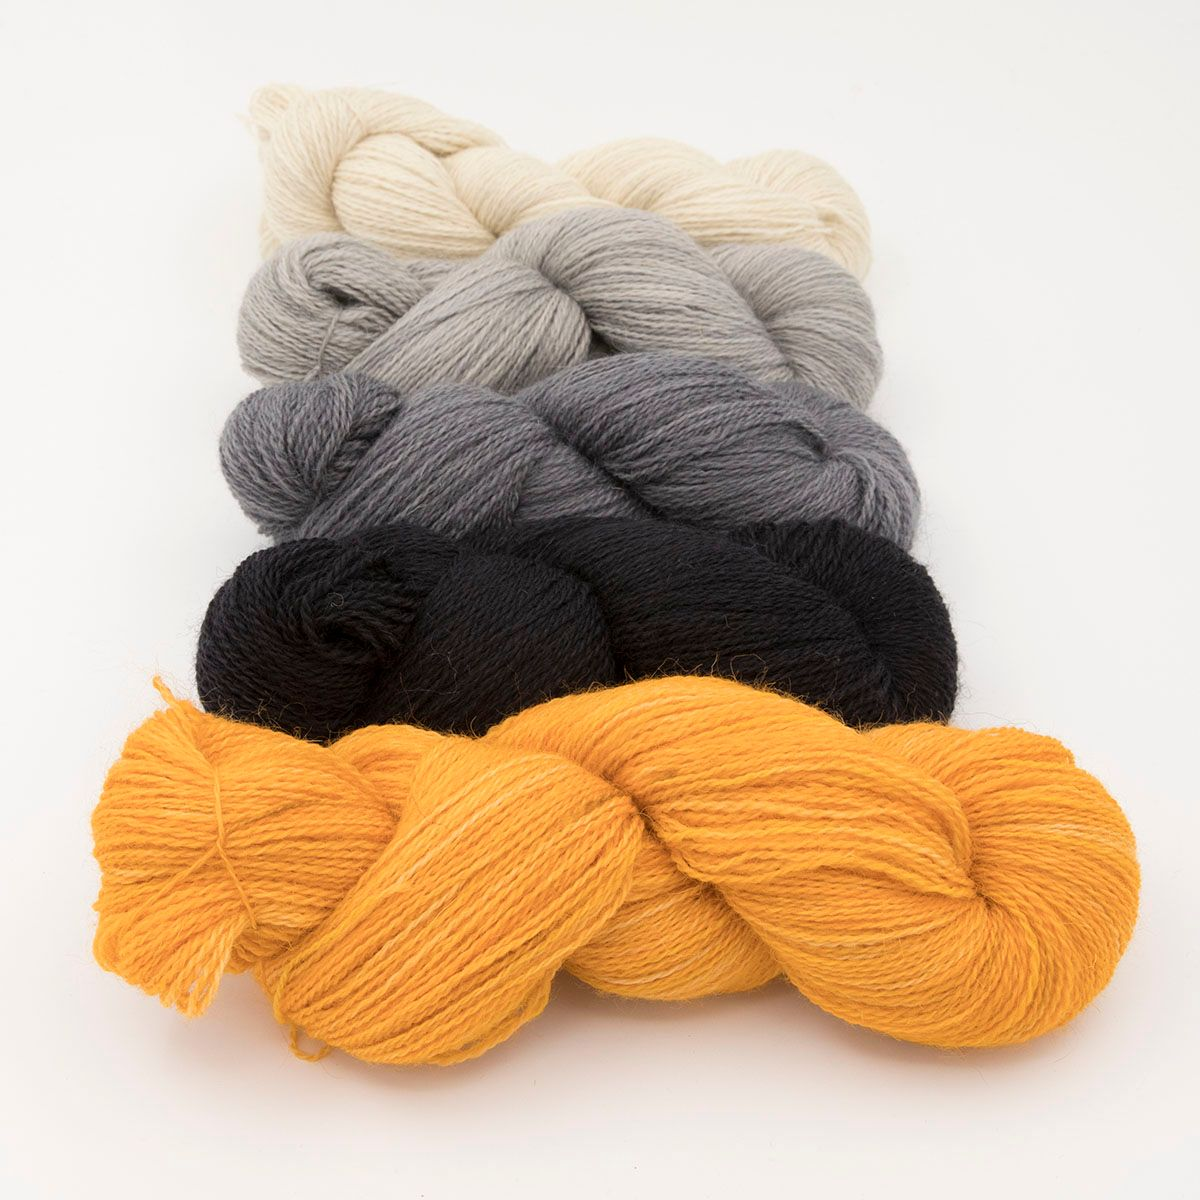 neutral fade and marigold one farm yarn 4ply hand dyed british wool the kn